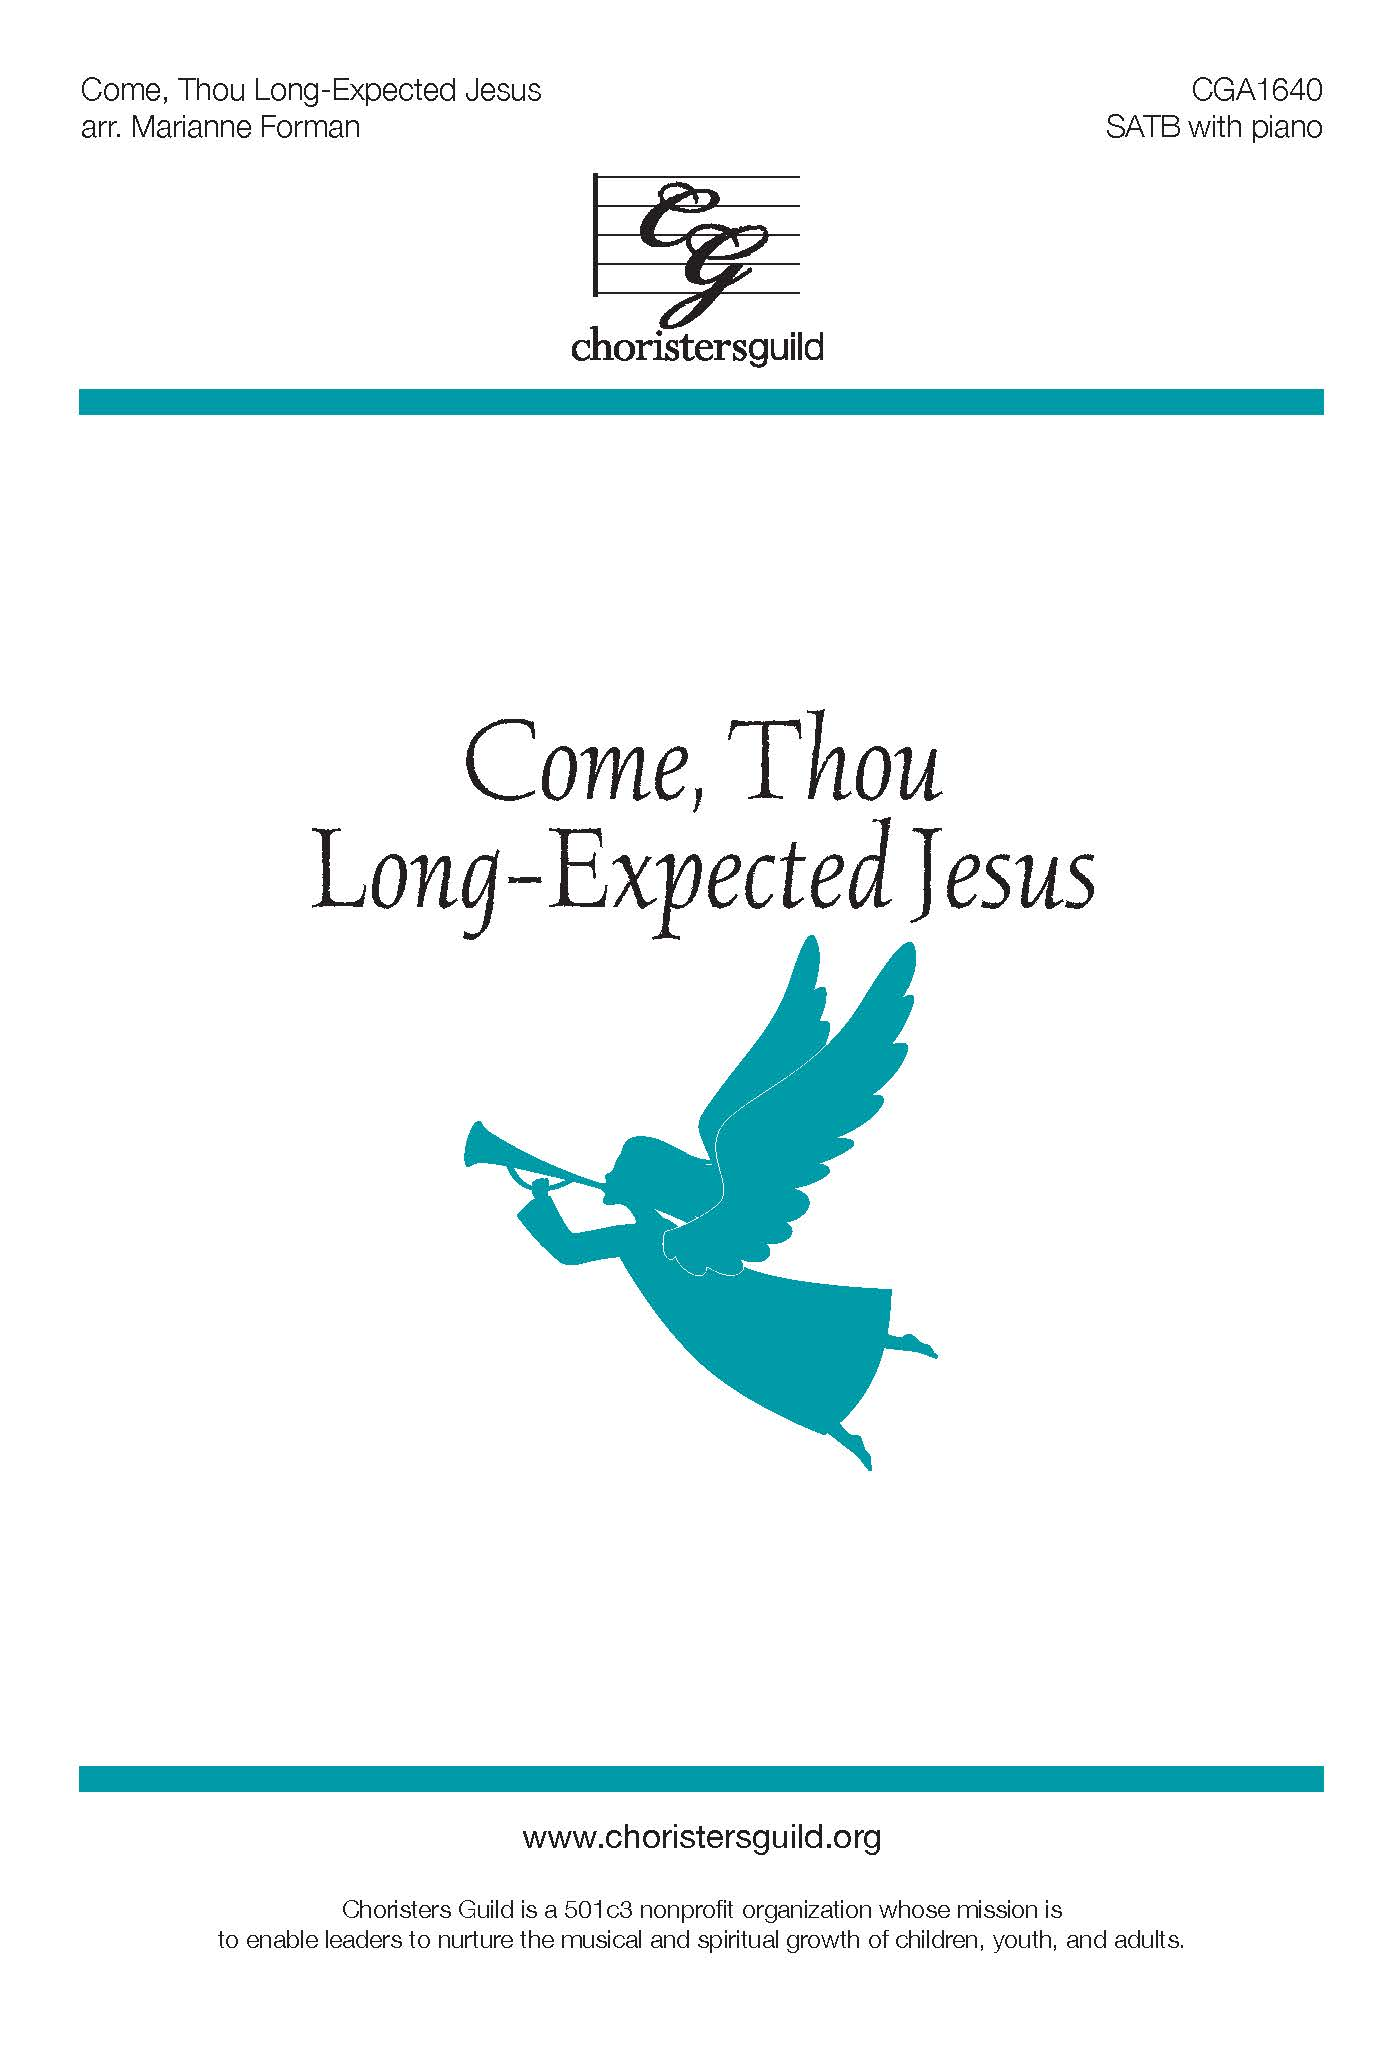 Come, Thou Long-Expected Jesus - SATB